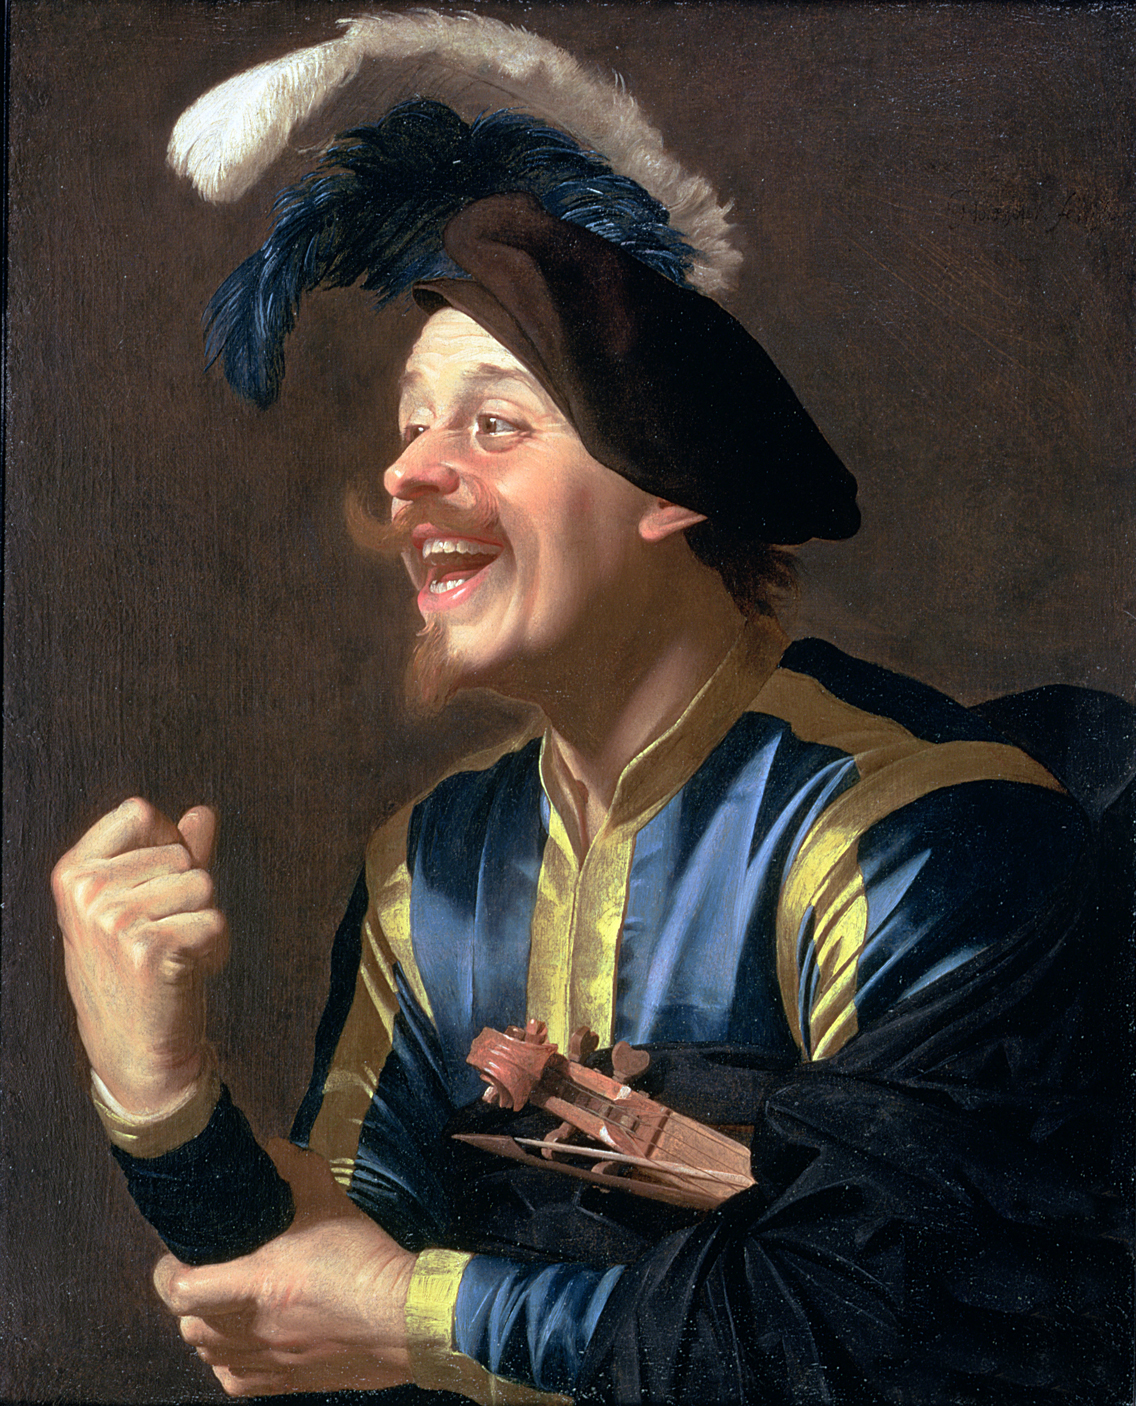 Portrait of a Laughing Violinist, by Gerrit van Honthorst, 1624.